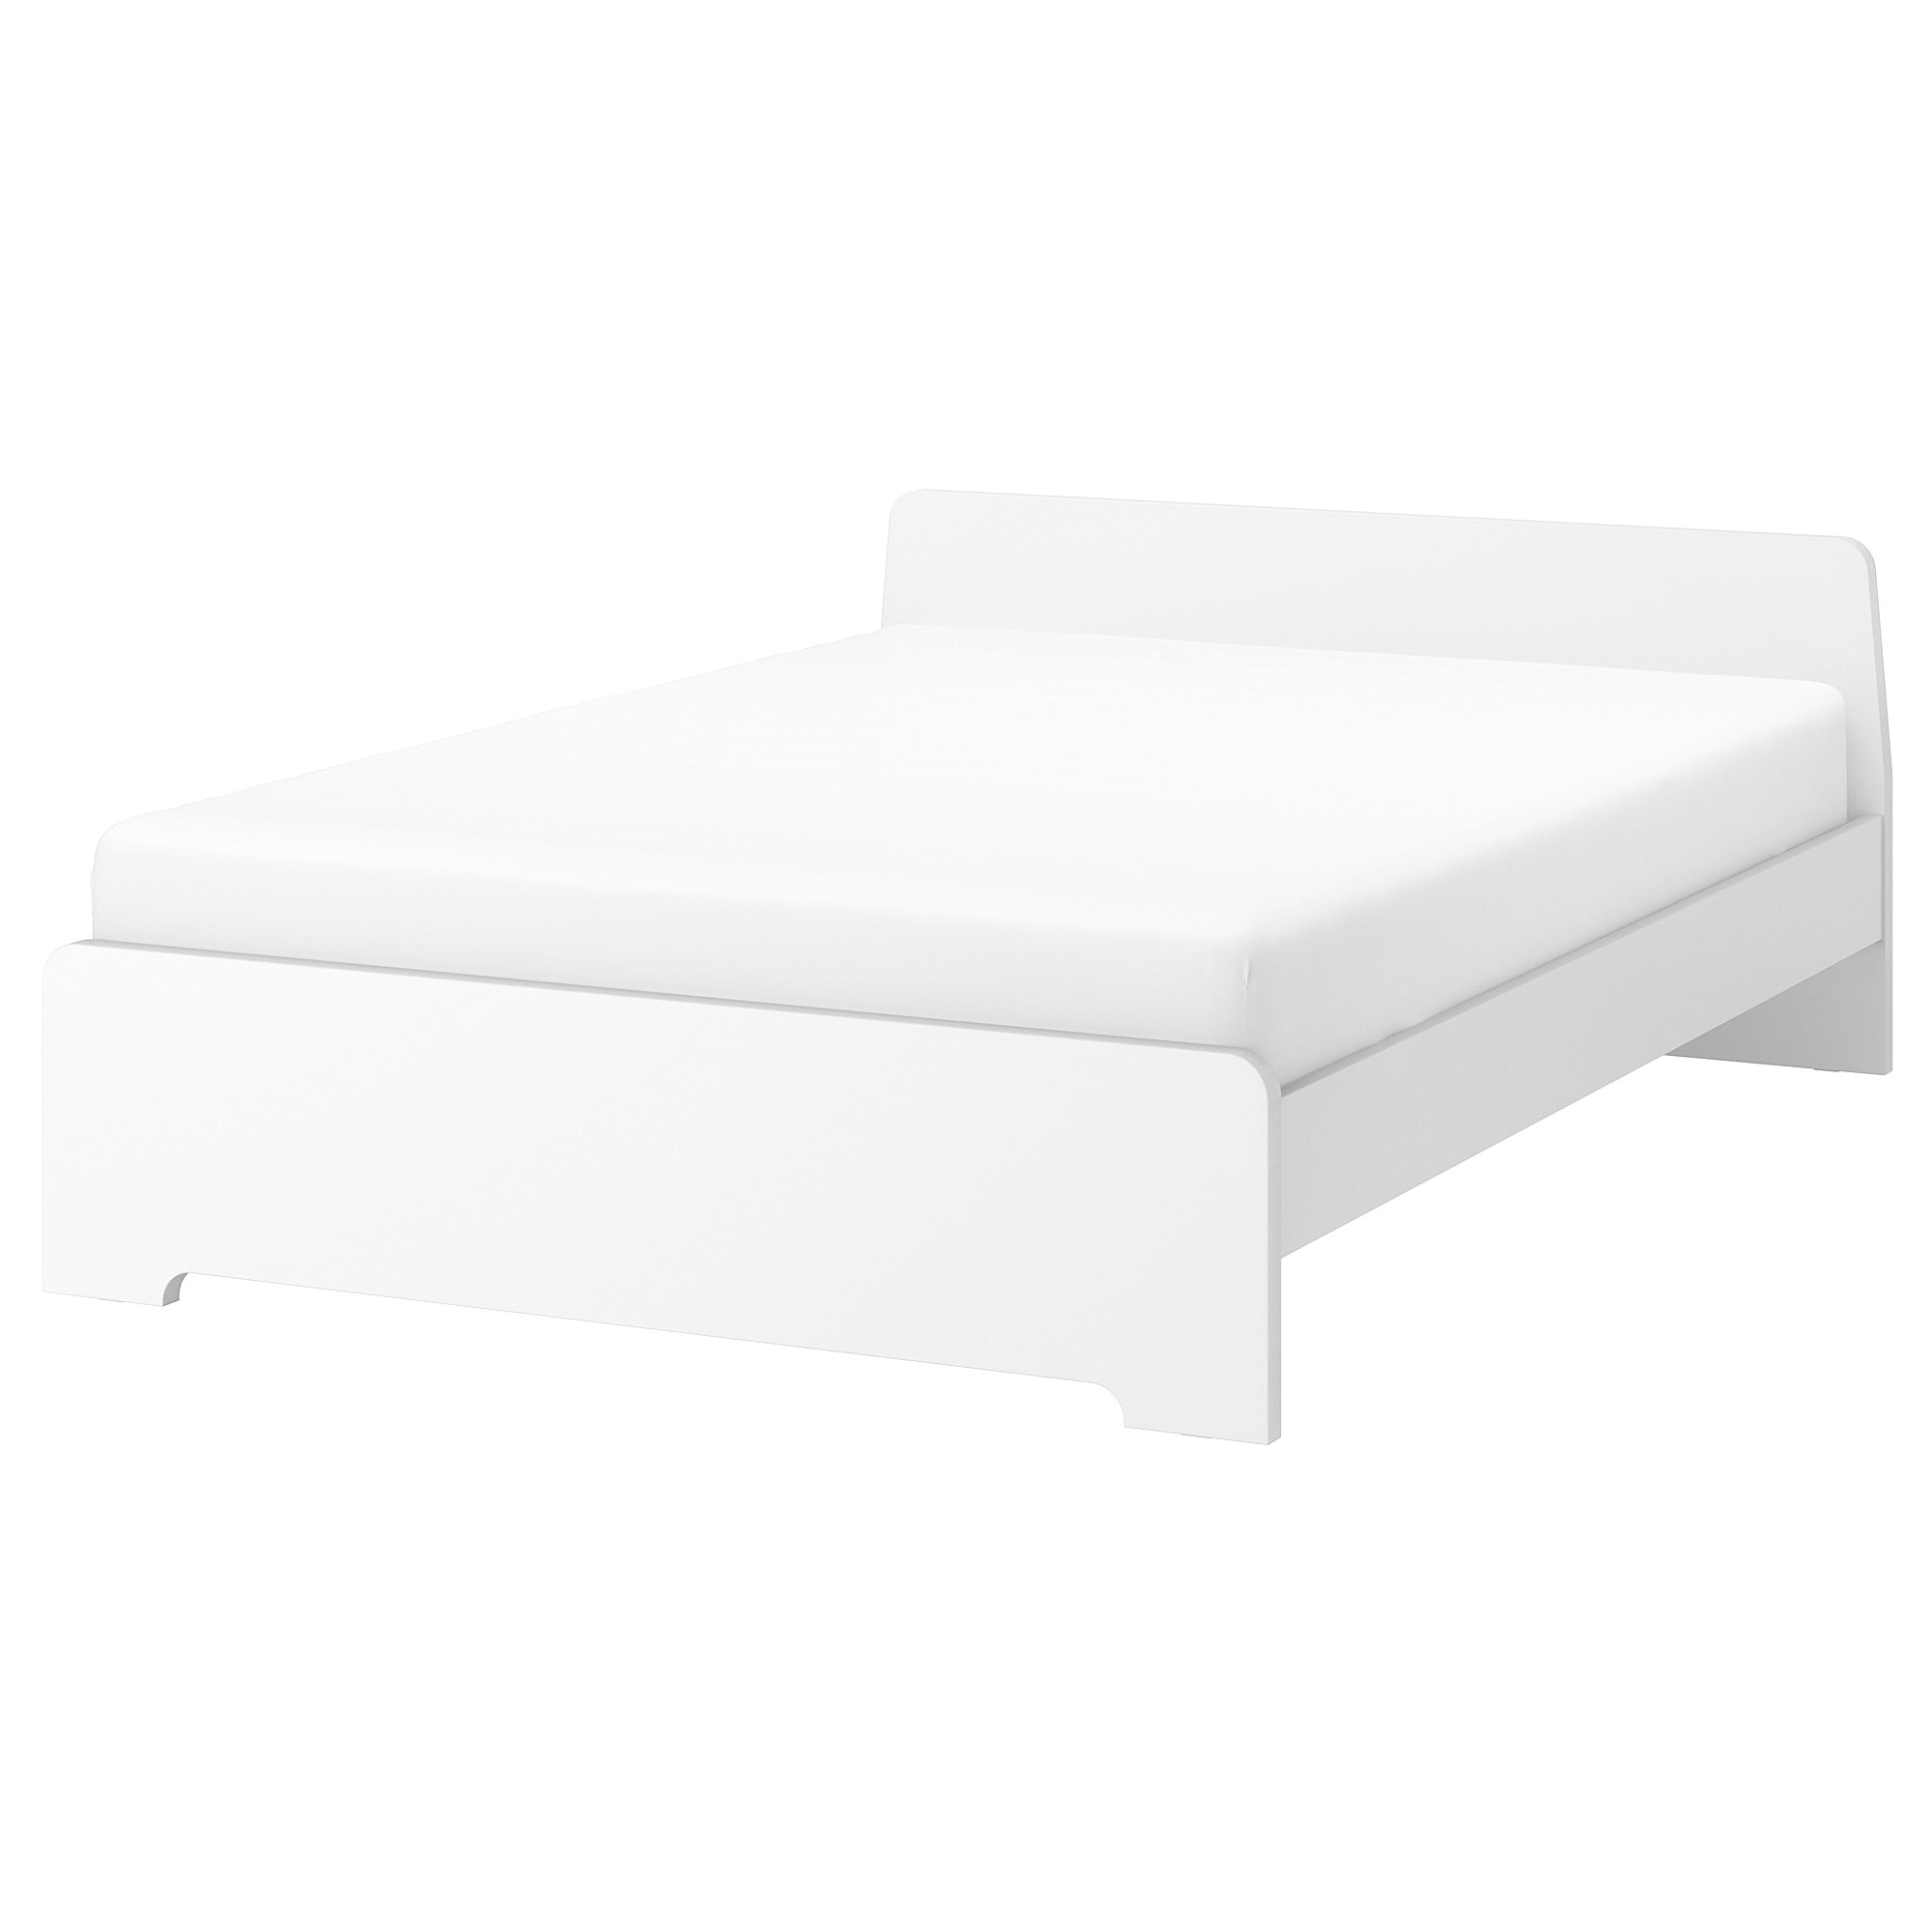 ikea askvoll bed frame adjustable bed sides allow you to use mattresses of different thicknesses